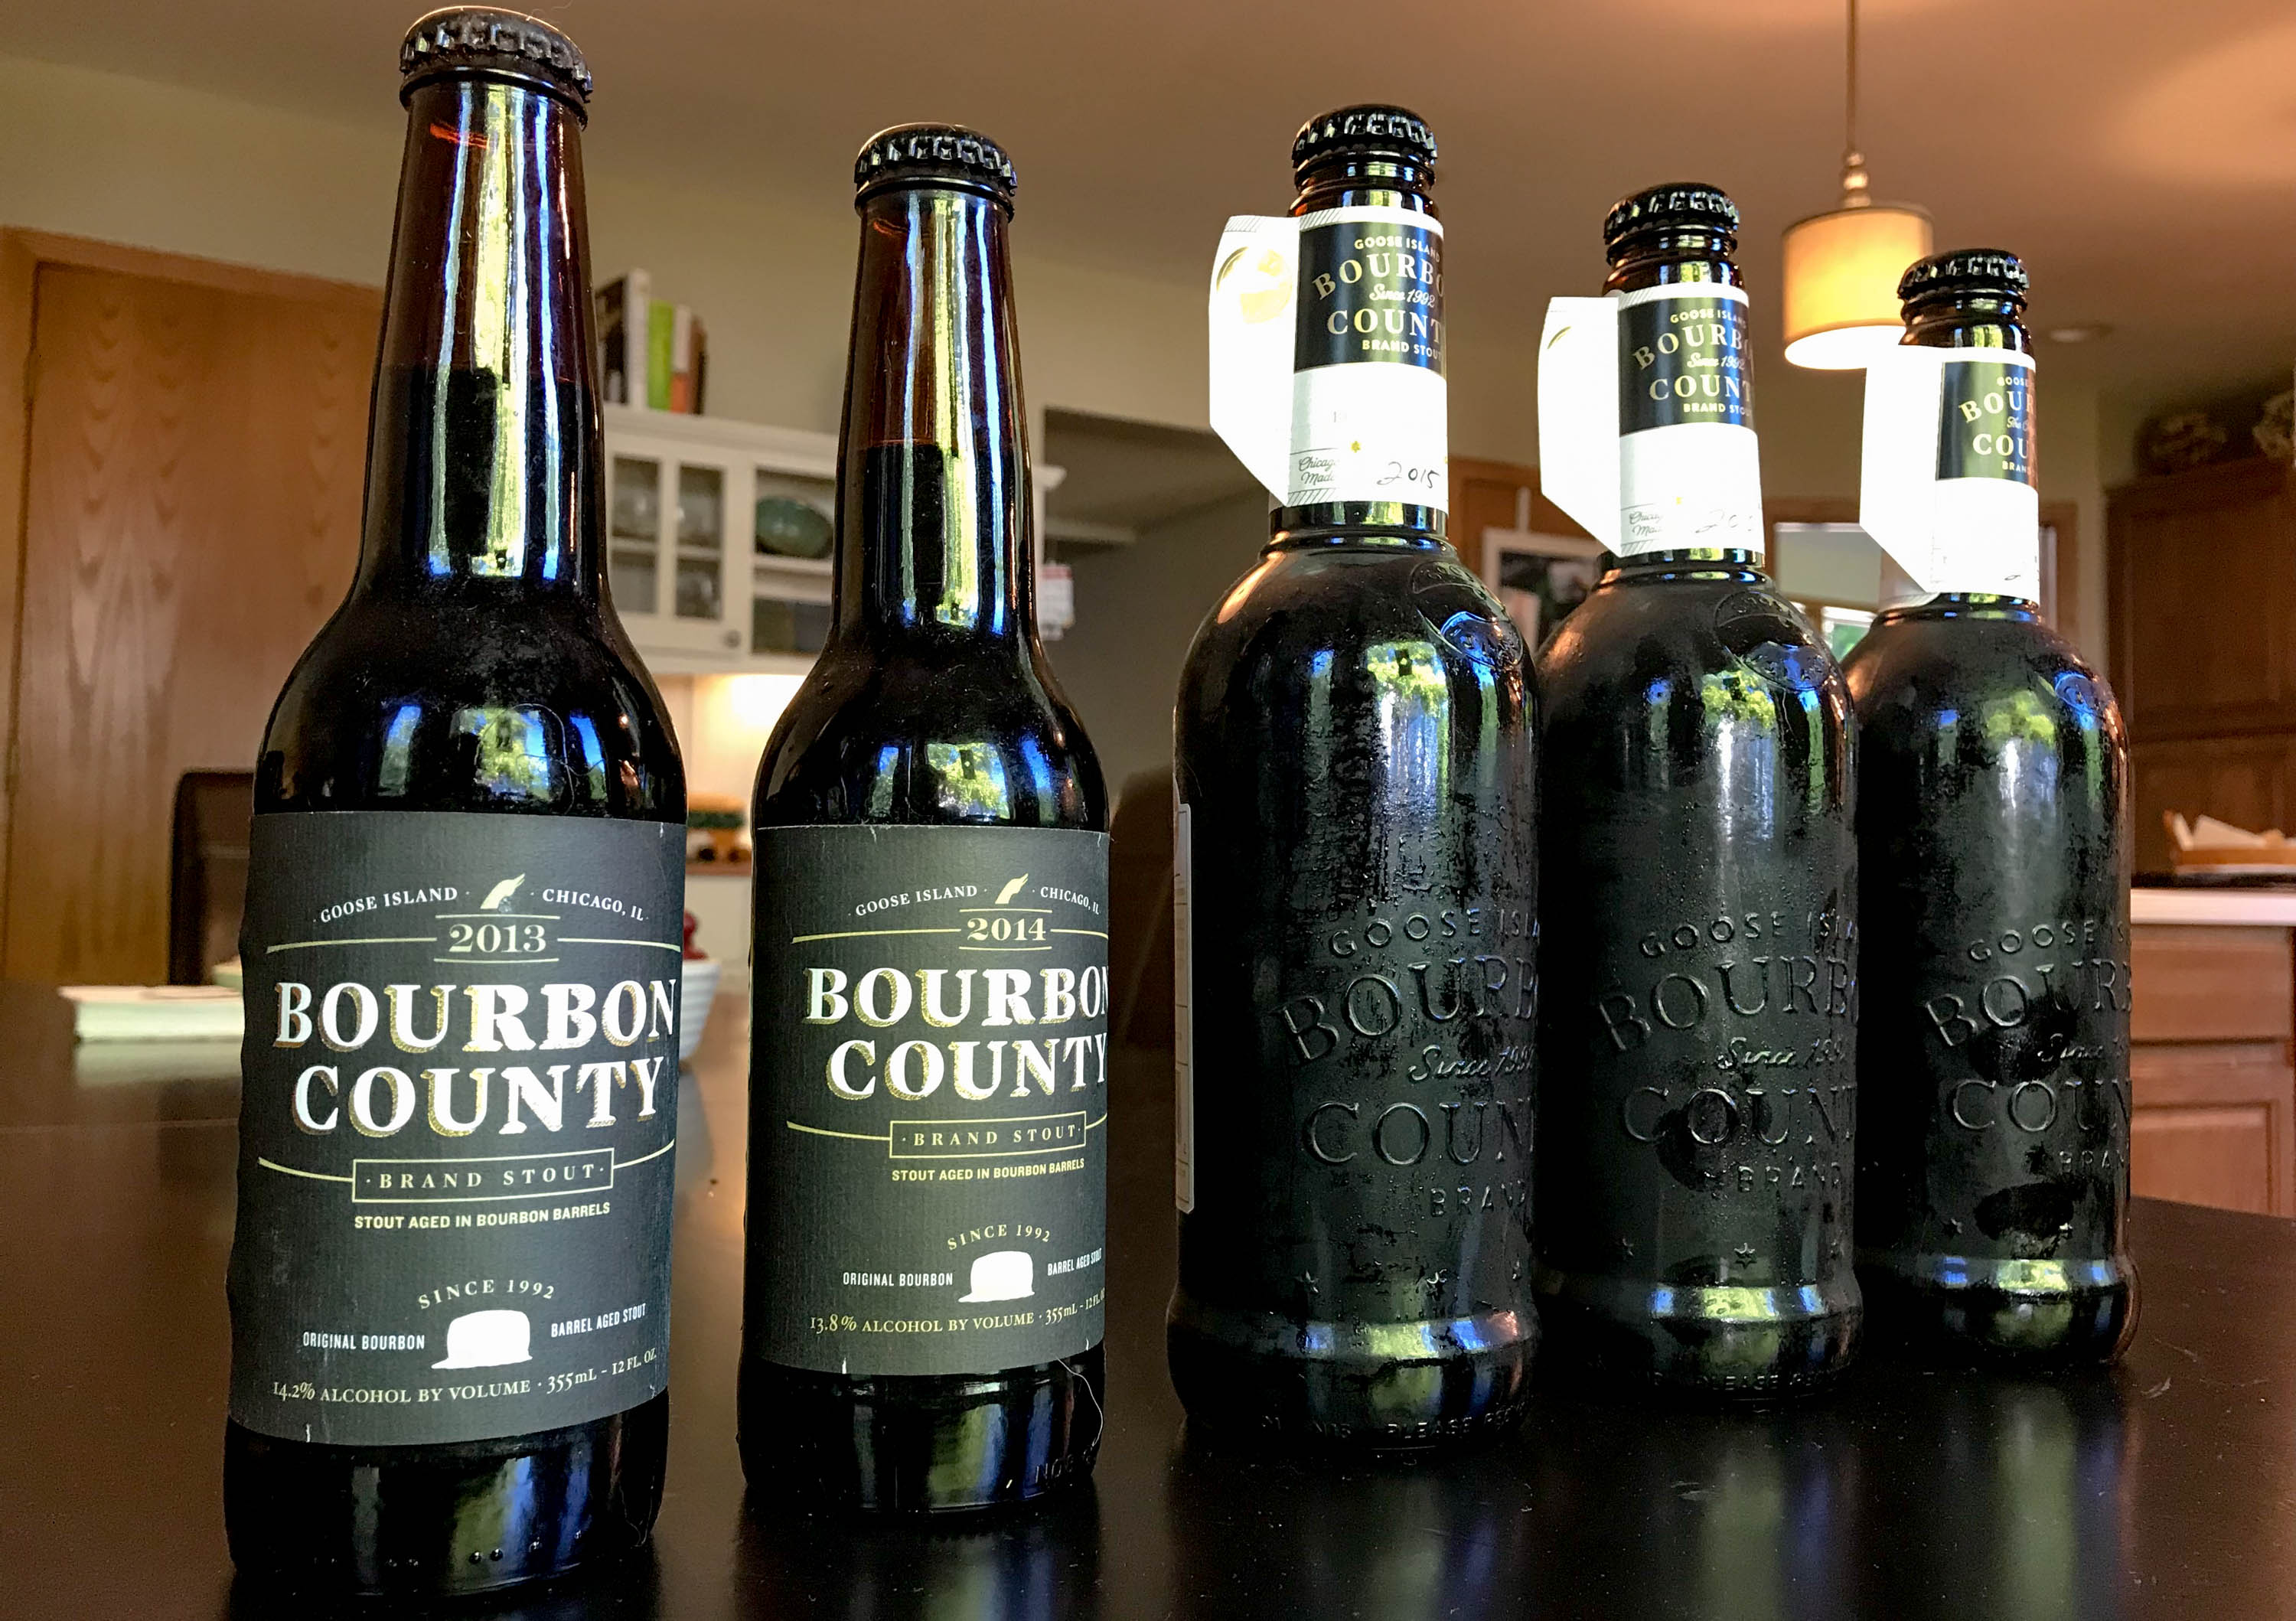 A five year vertical of Bourbon County Brand Stout. Older, pre-brewery sale style bottles are on the left, while the newer bottle design is on the right. <em>Michael Neelsen (TTBOOK)</em>